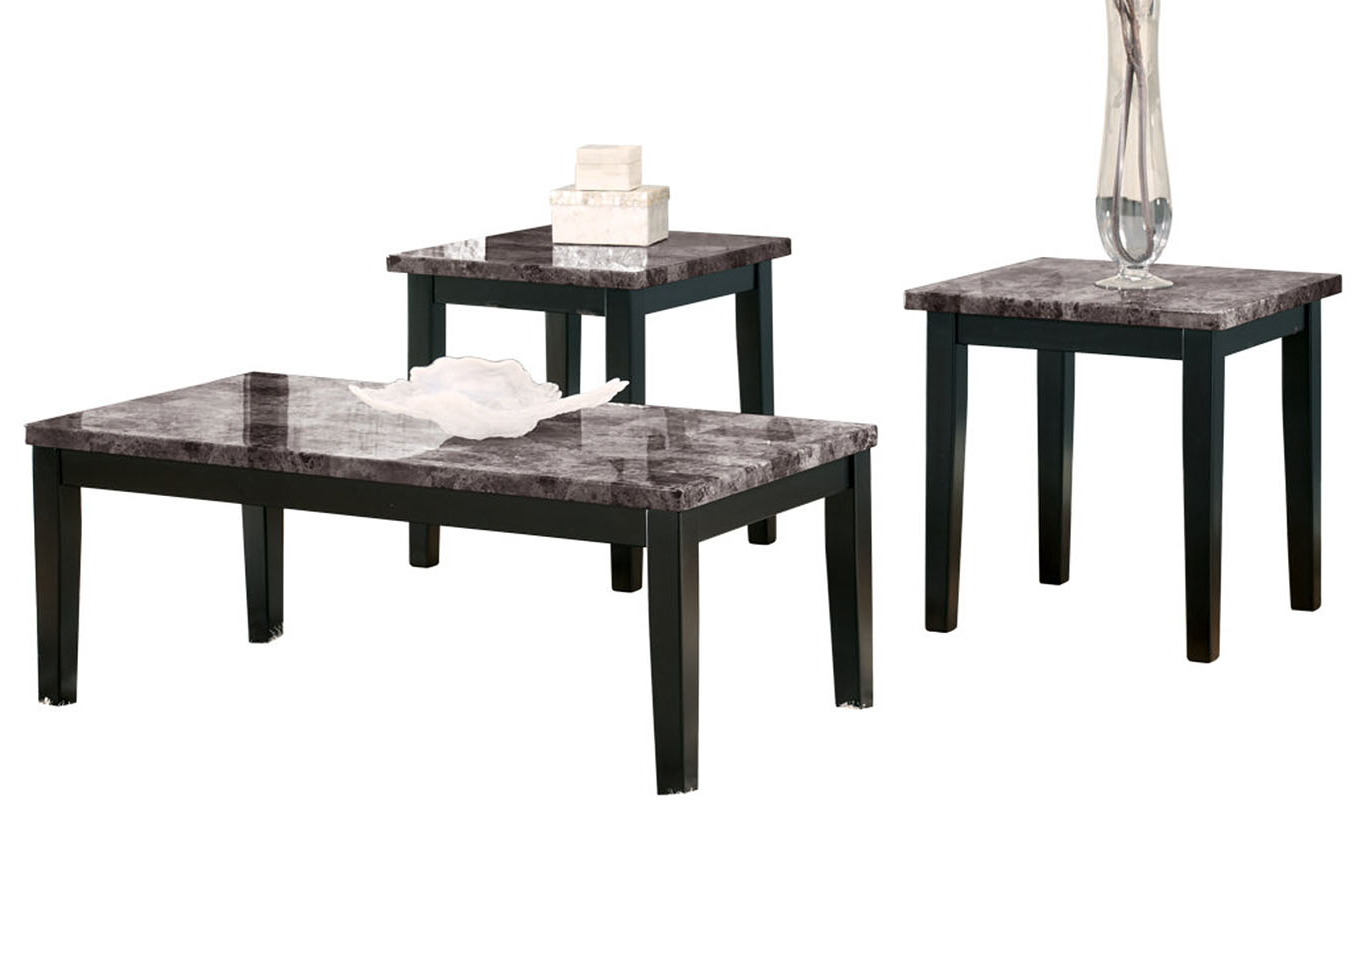 Newest Berrios 3 Piece Counter Height Dining Sets in Ashley Furniture Homestore - Independently Owned And Operated